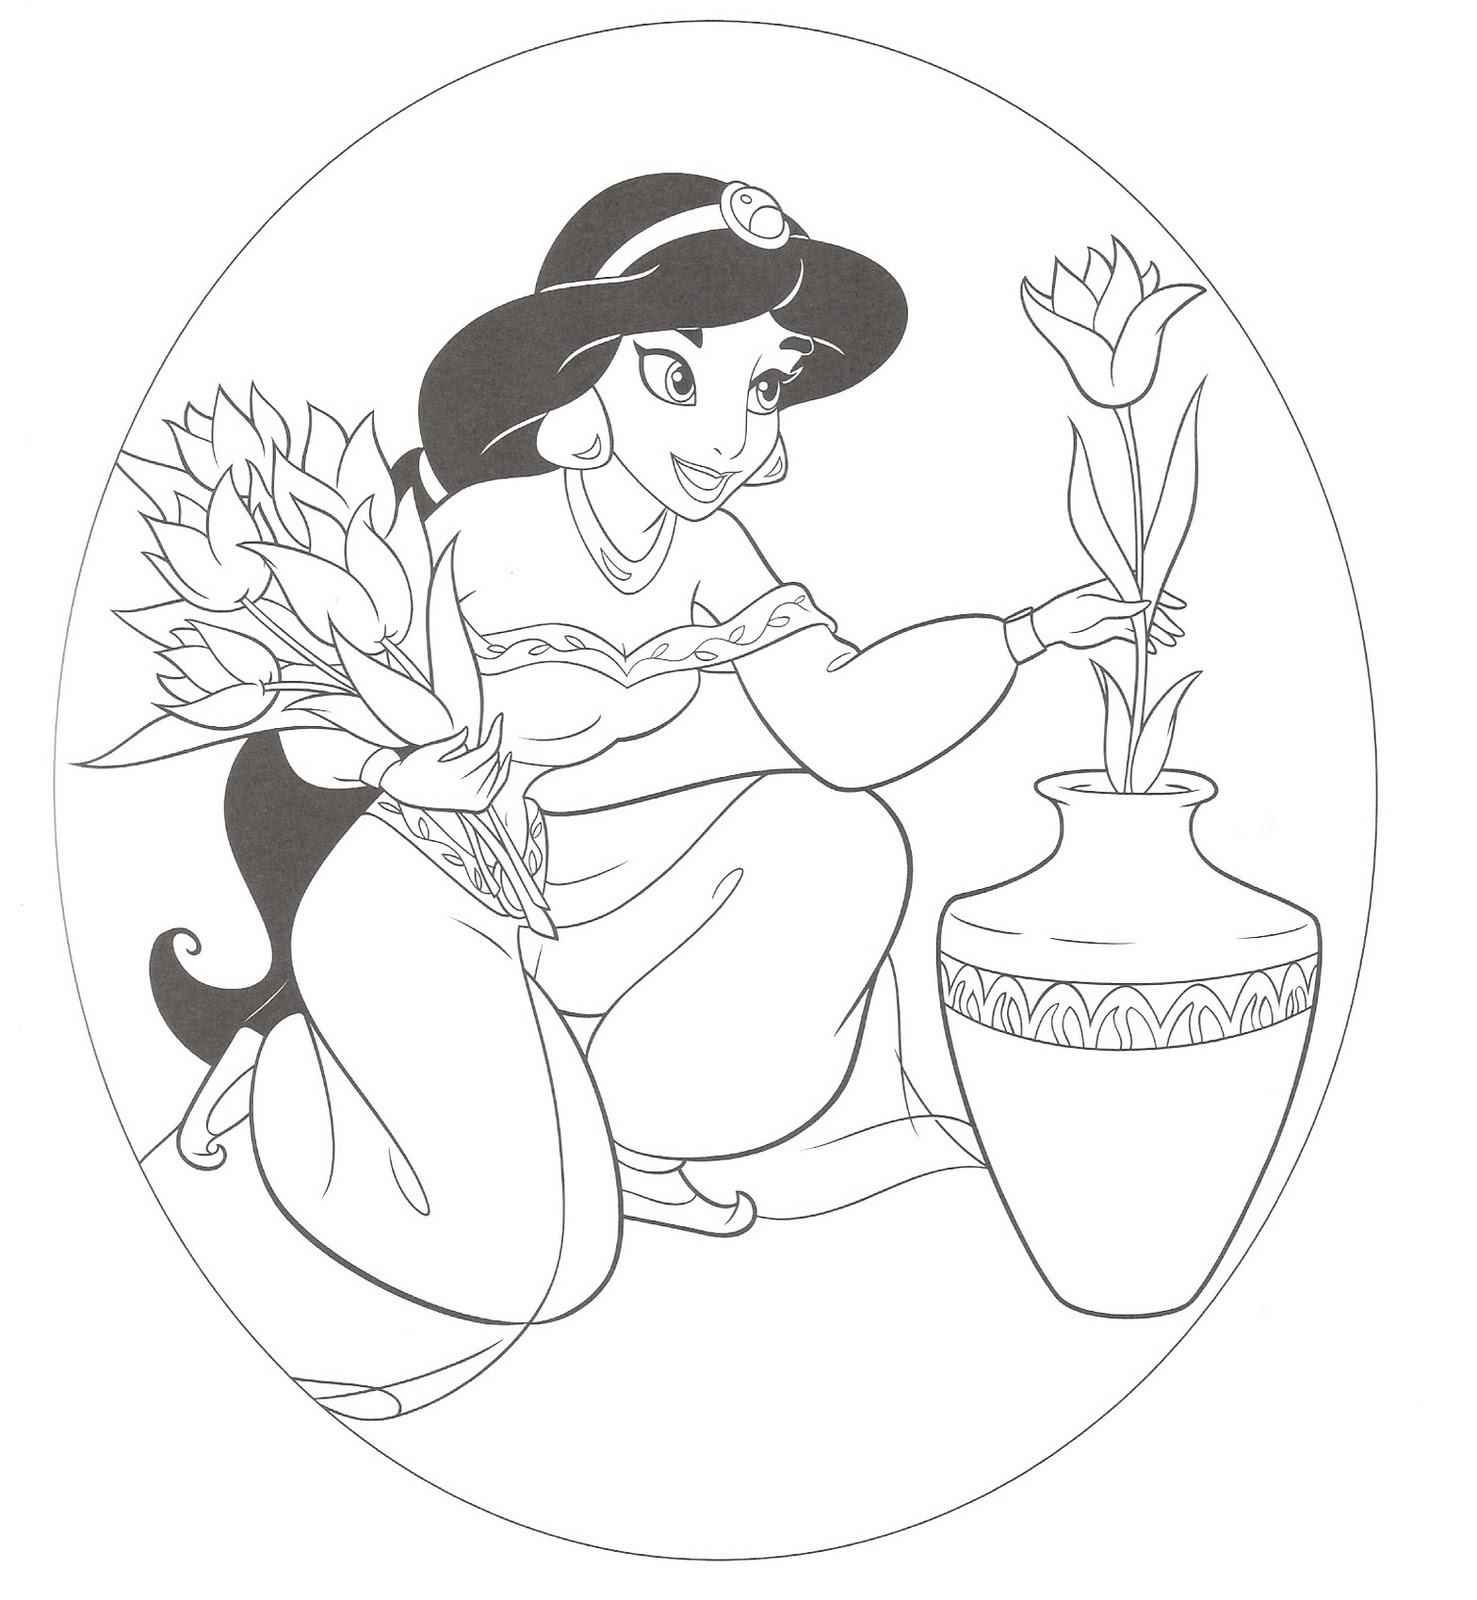 Disney Princess Coloring Pages For Kids Disney Princesses Coloring Pages Free Coloring Sheets